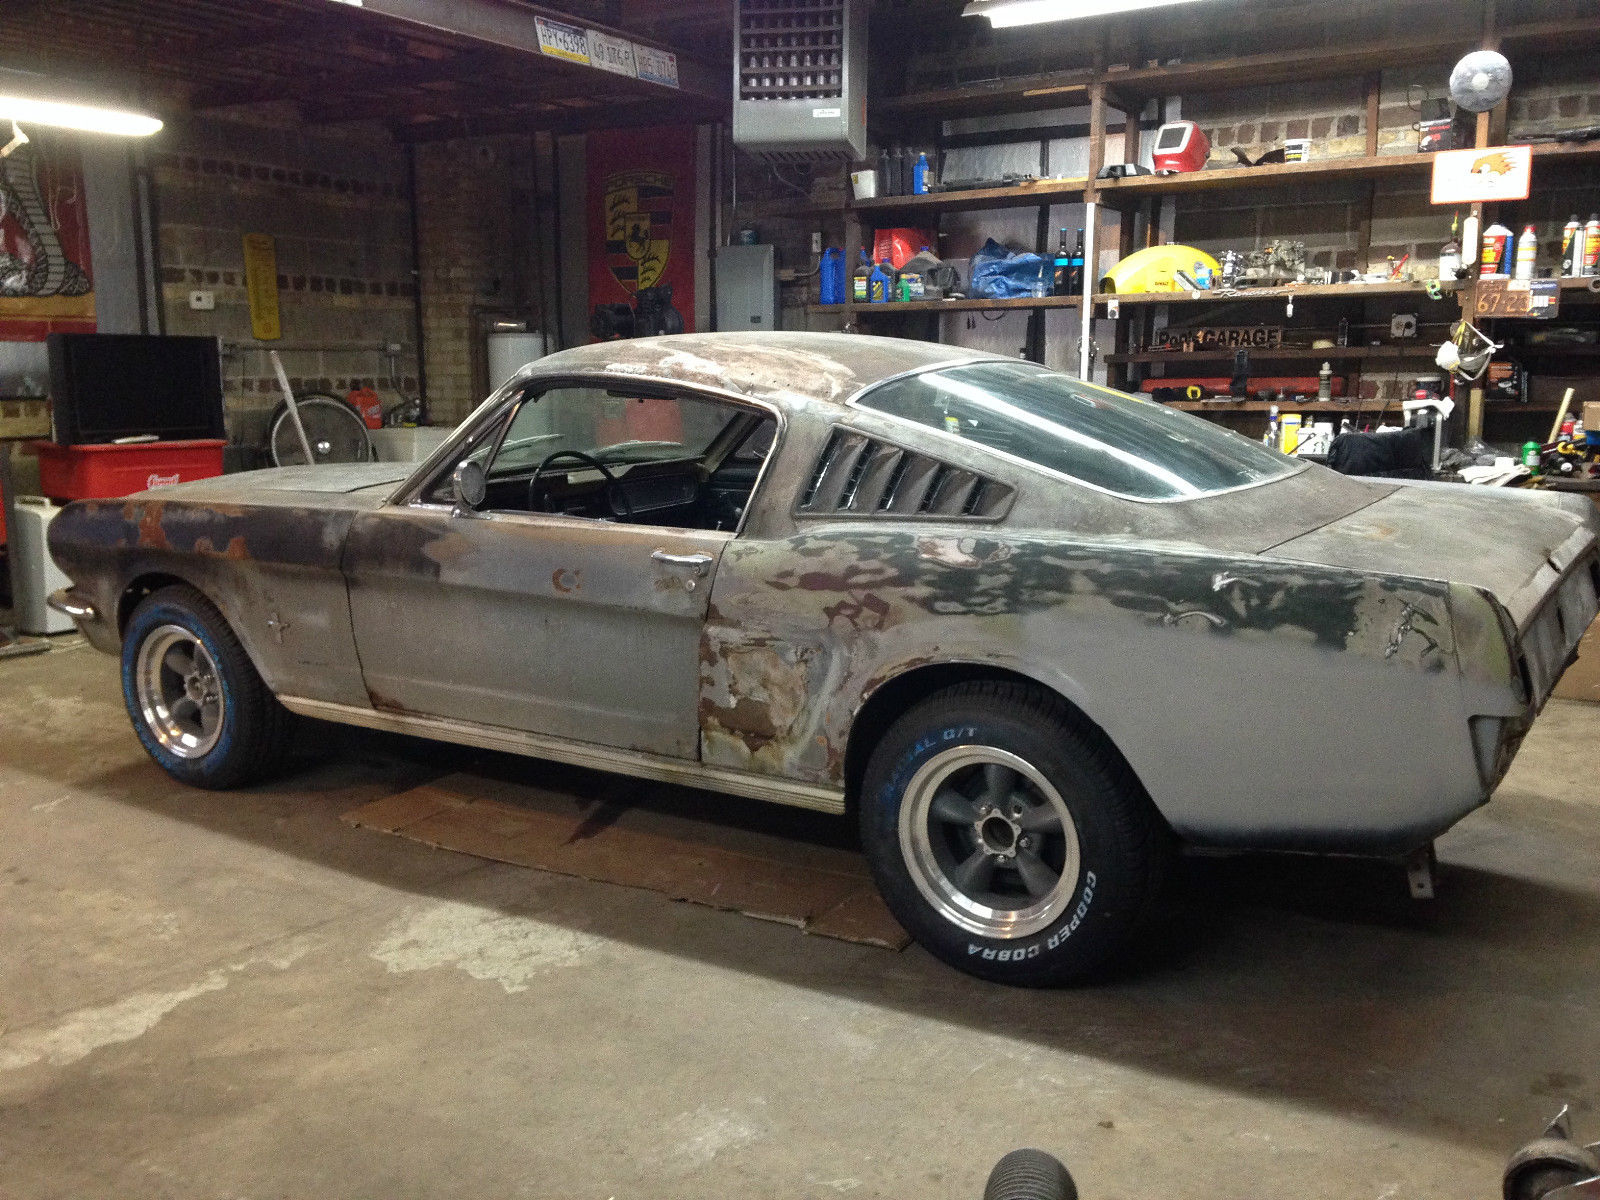 ... Alabama Barn Find Solid Car - Classic Ford Mustang 1965 for sale